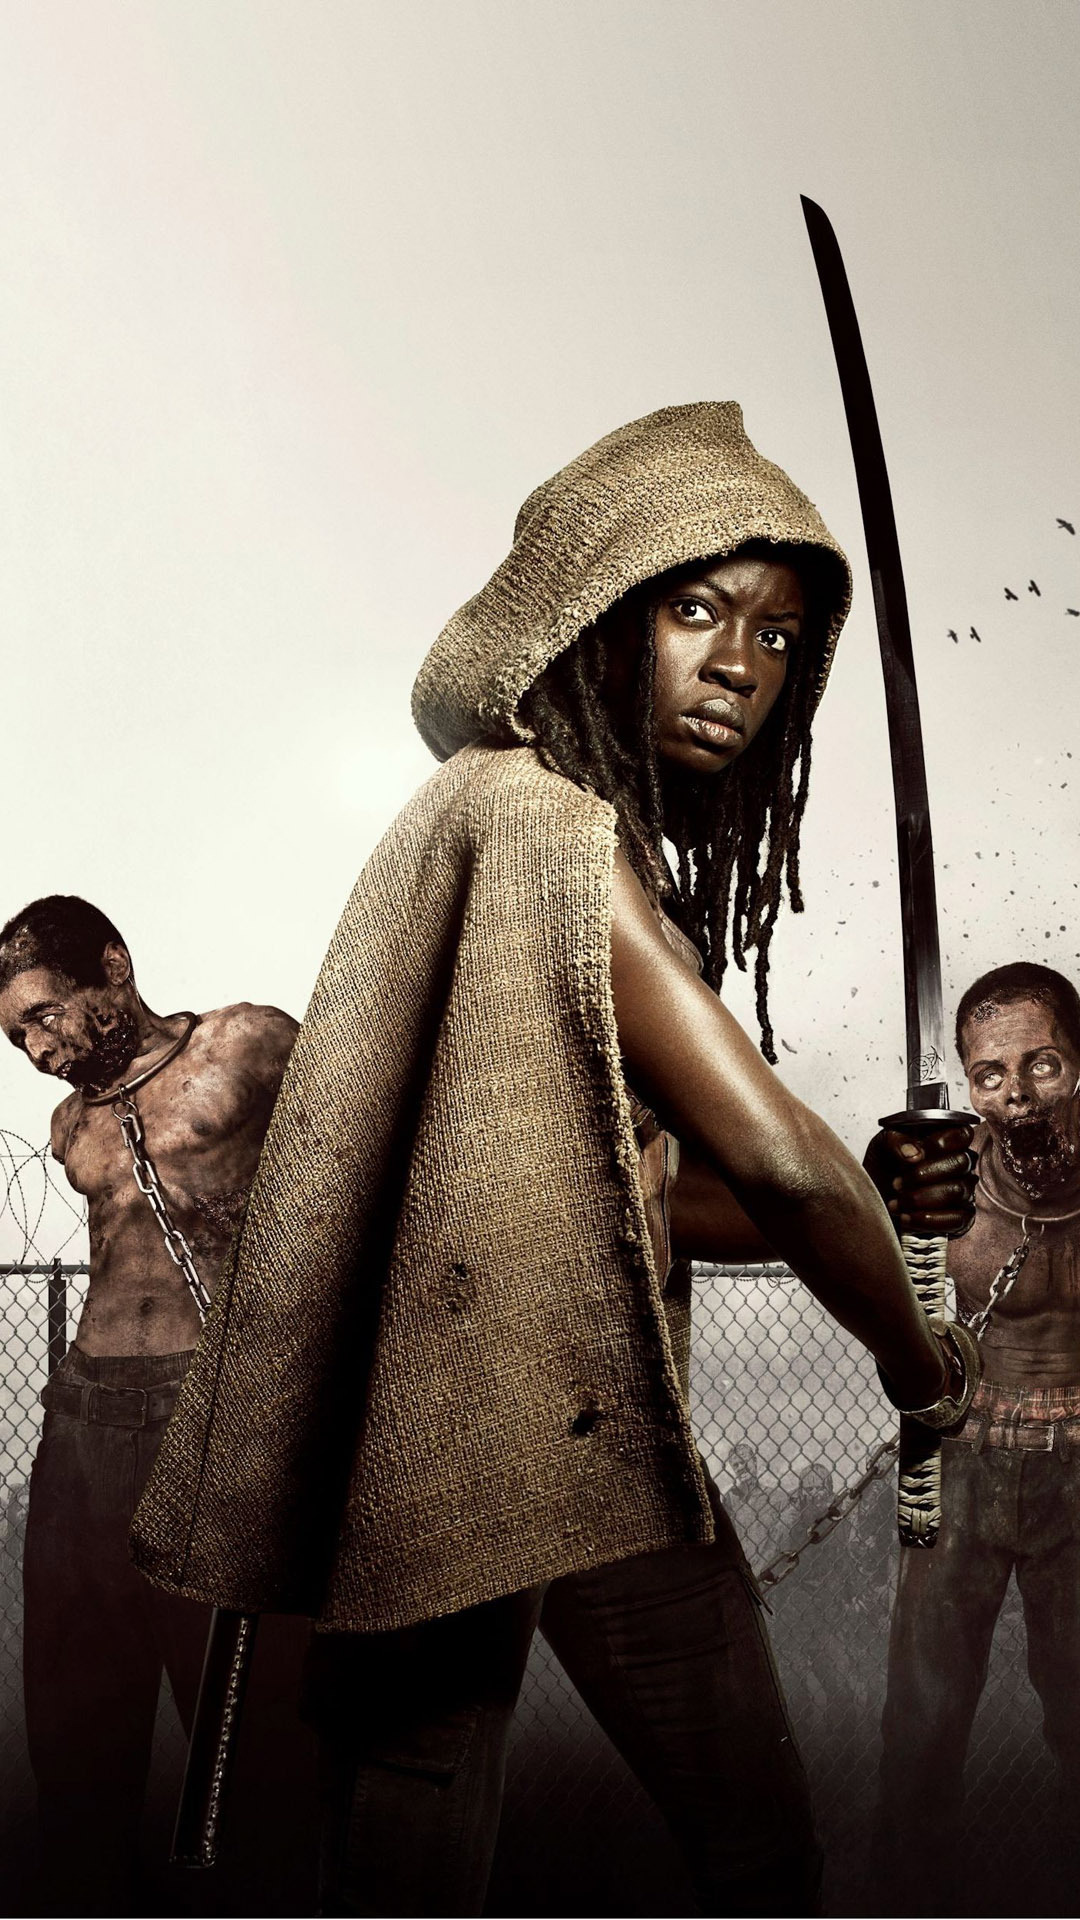 The Walking Dead wallpapers for iPhone and iPad 1080x1920